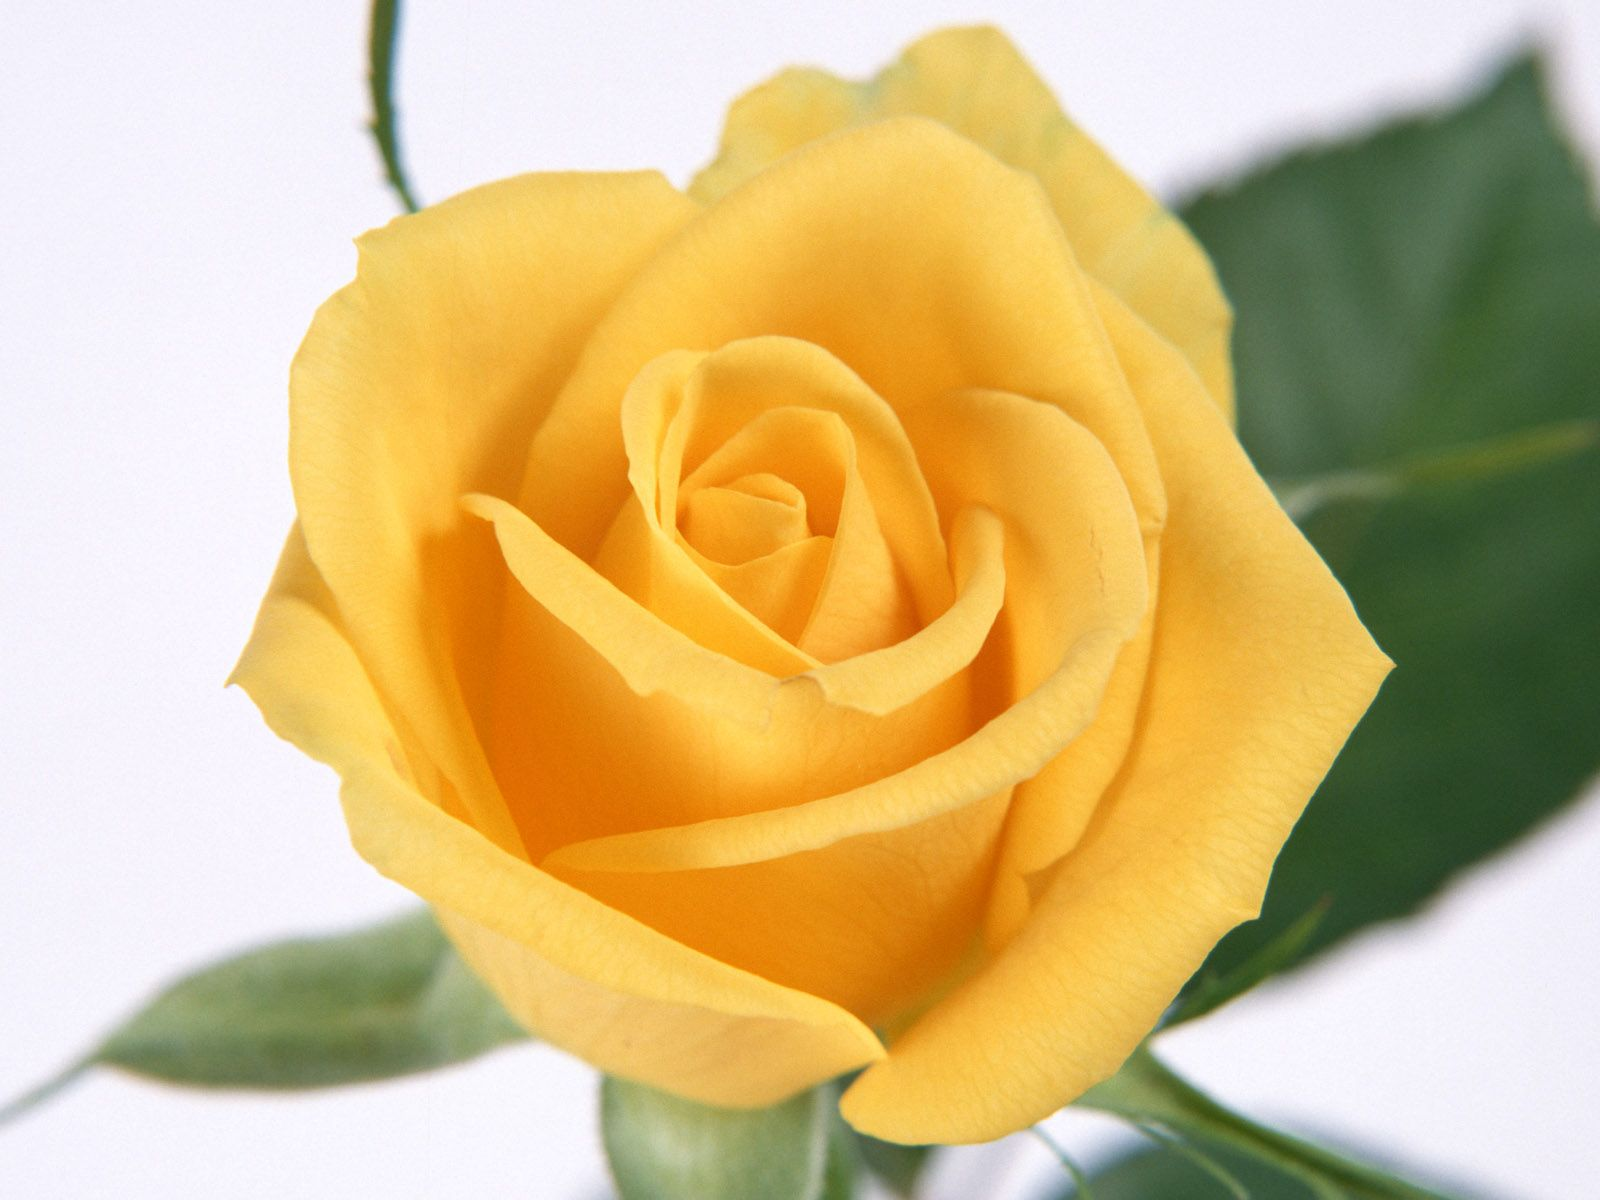 The yellow rose is a symbol of friendship and caring. It